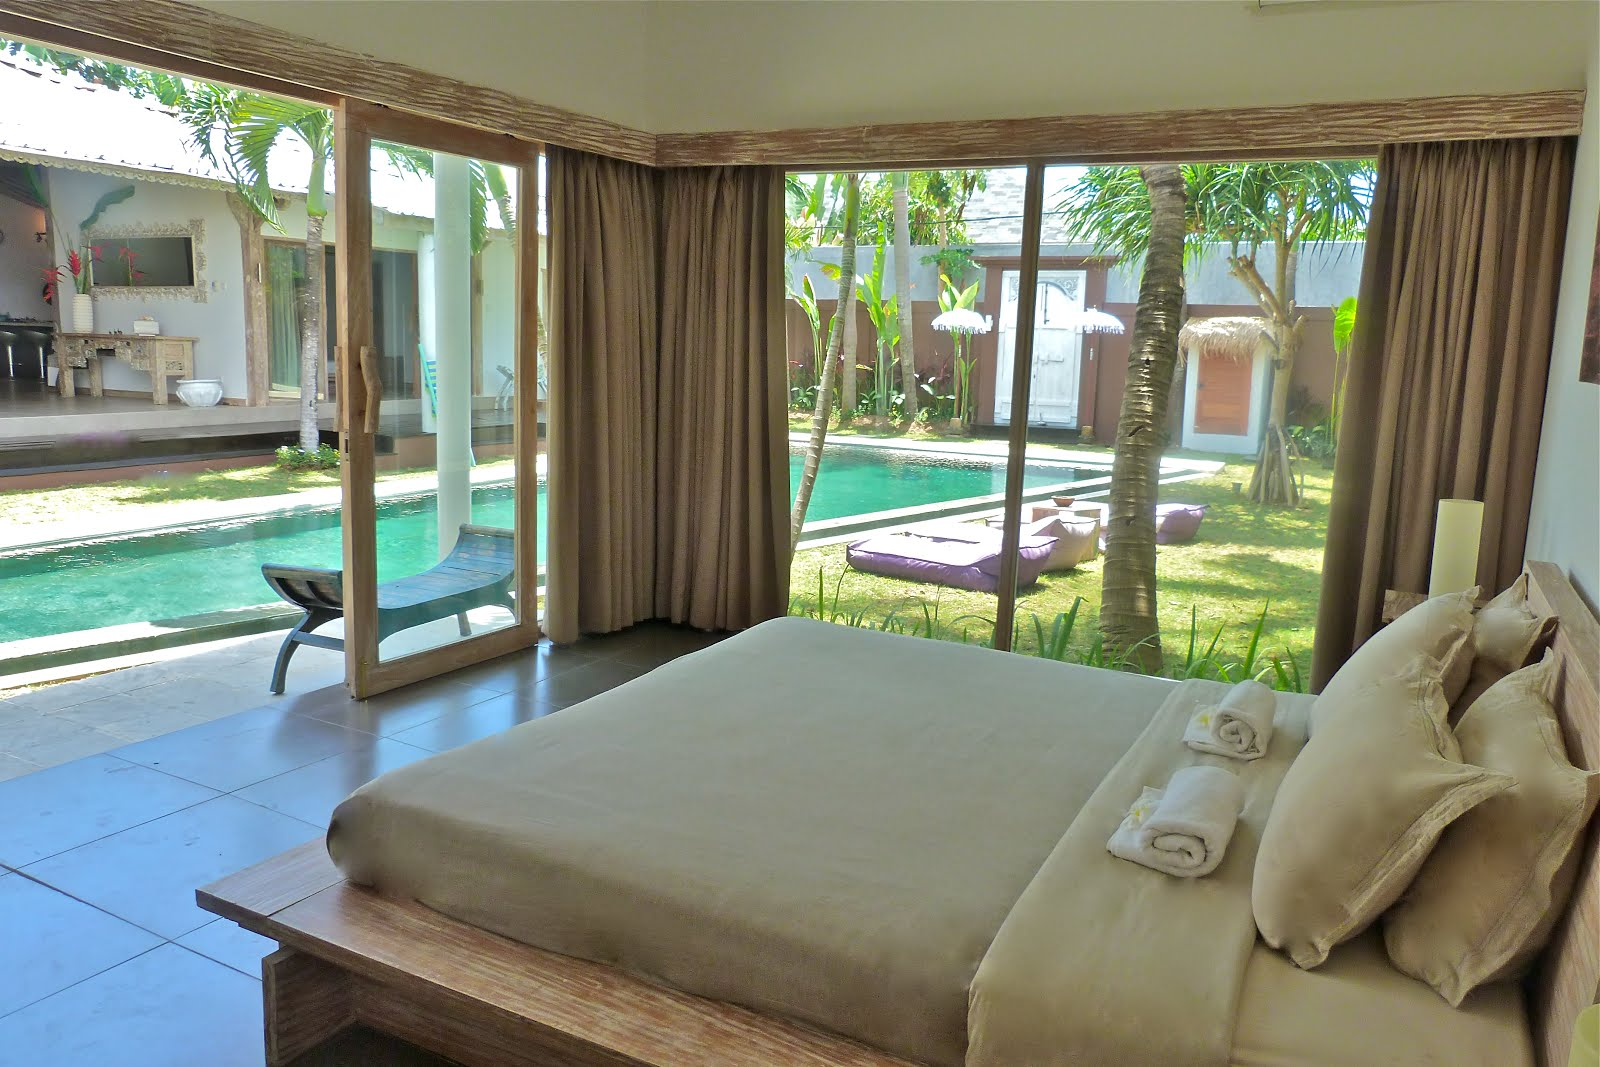 FOR RENT VILLA AT BALI click here